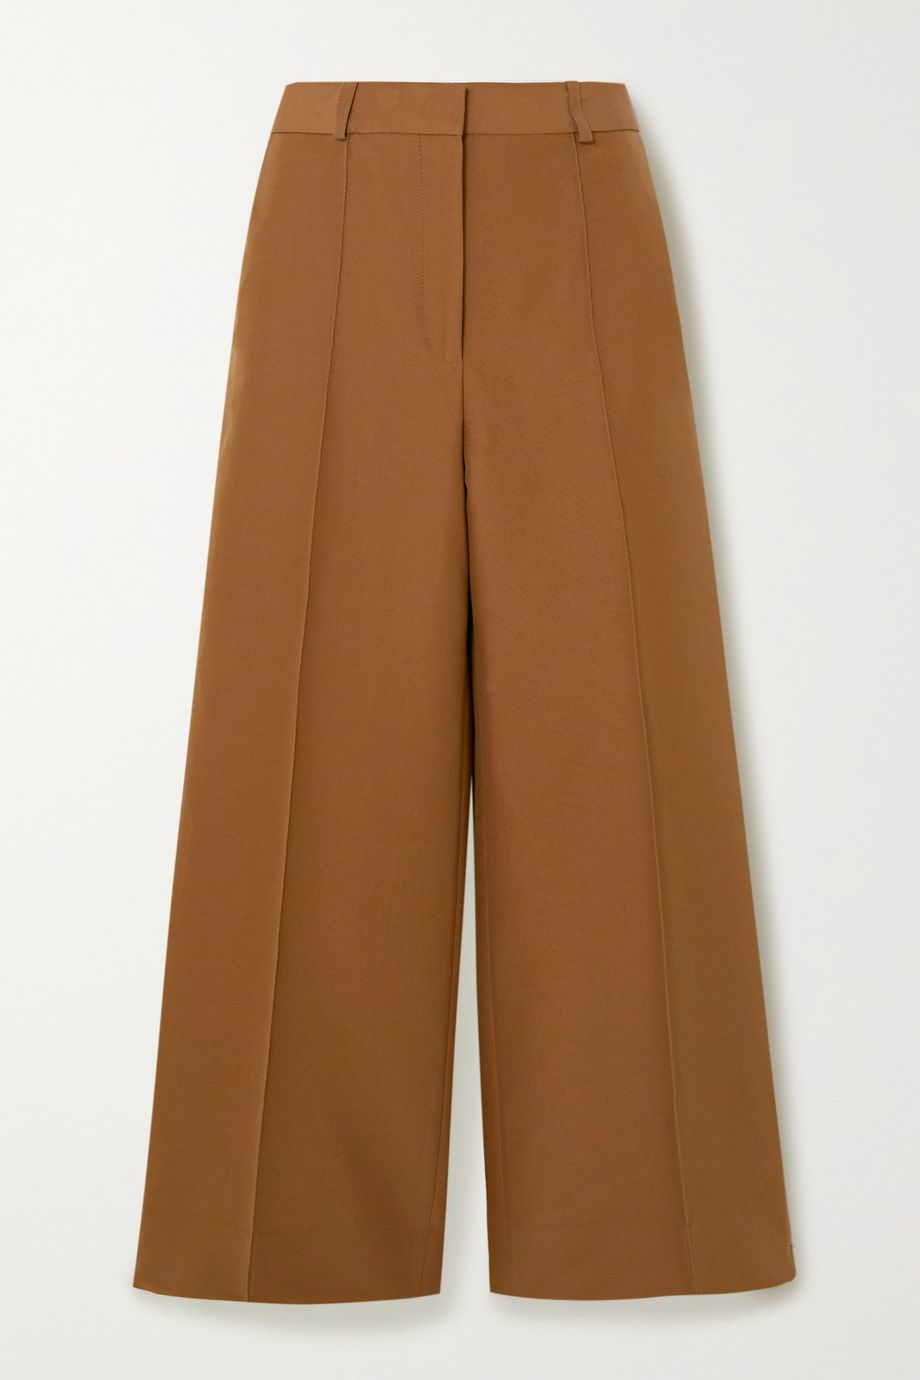 Victoria, Victoria Beckham Cropped cotton-blend twill wide-leg culottes